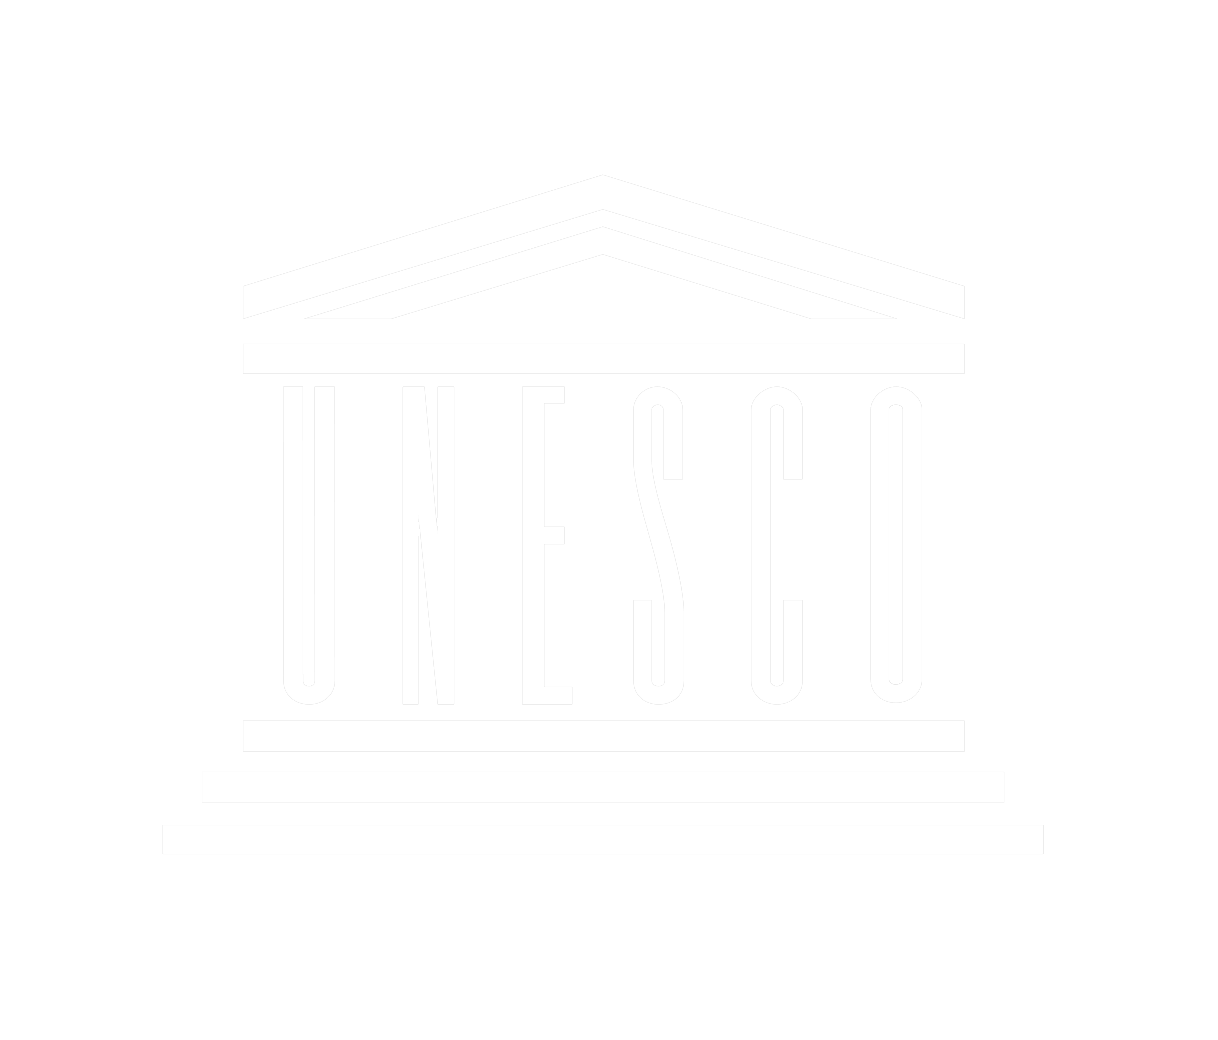 UNESCO - One Learning Planet